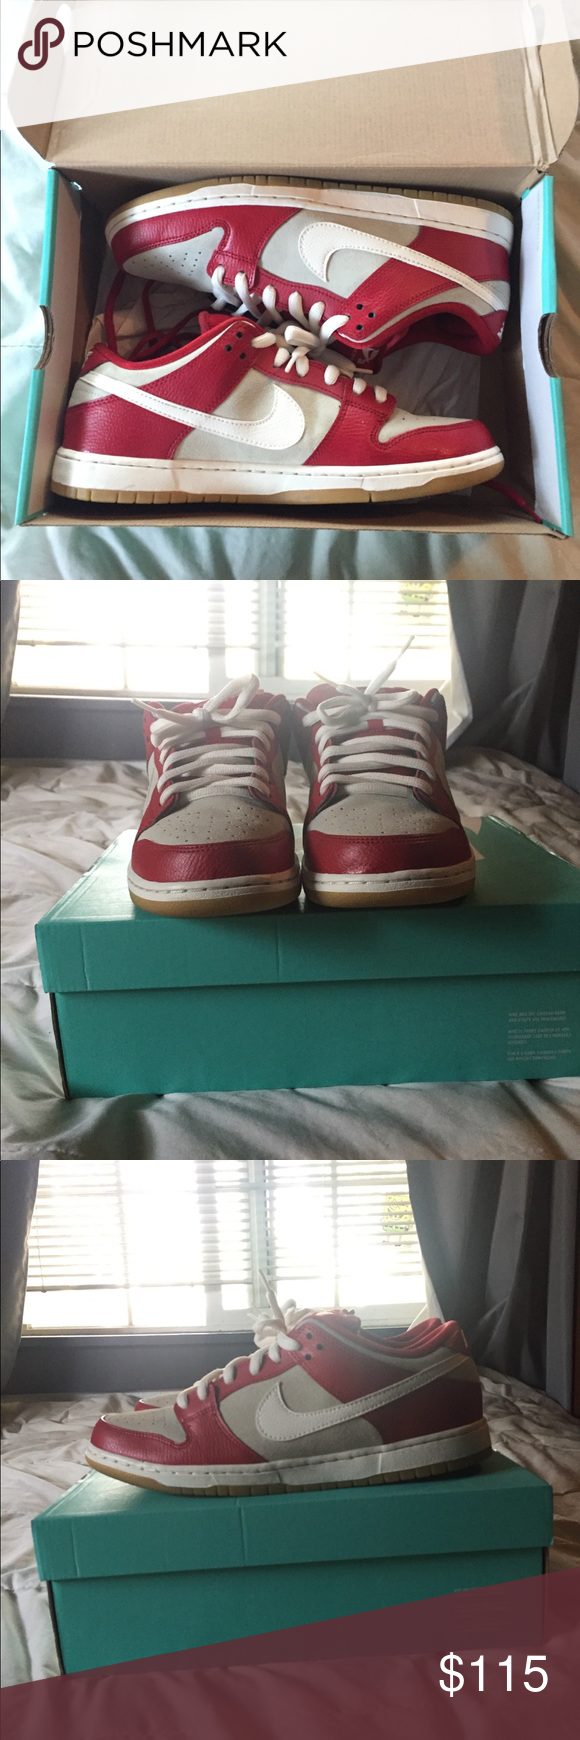 Nike Sb Dunk Low Valentines Day Size 11 Brand New Only Worn Once